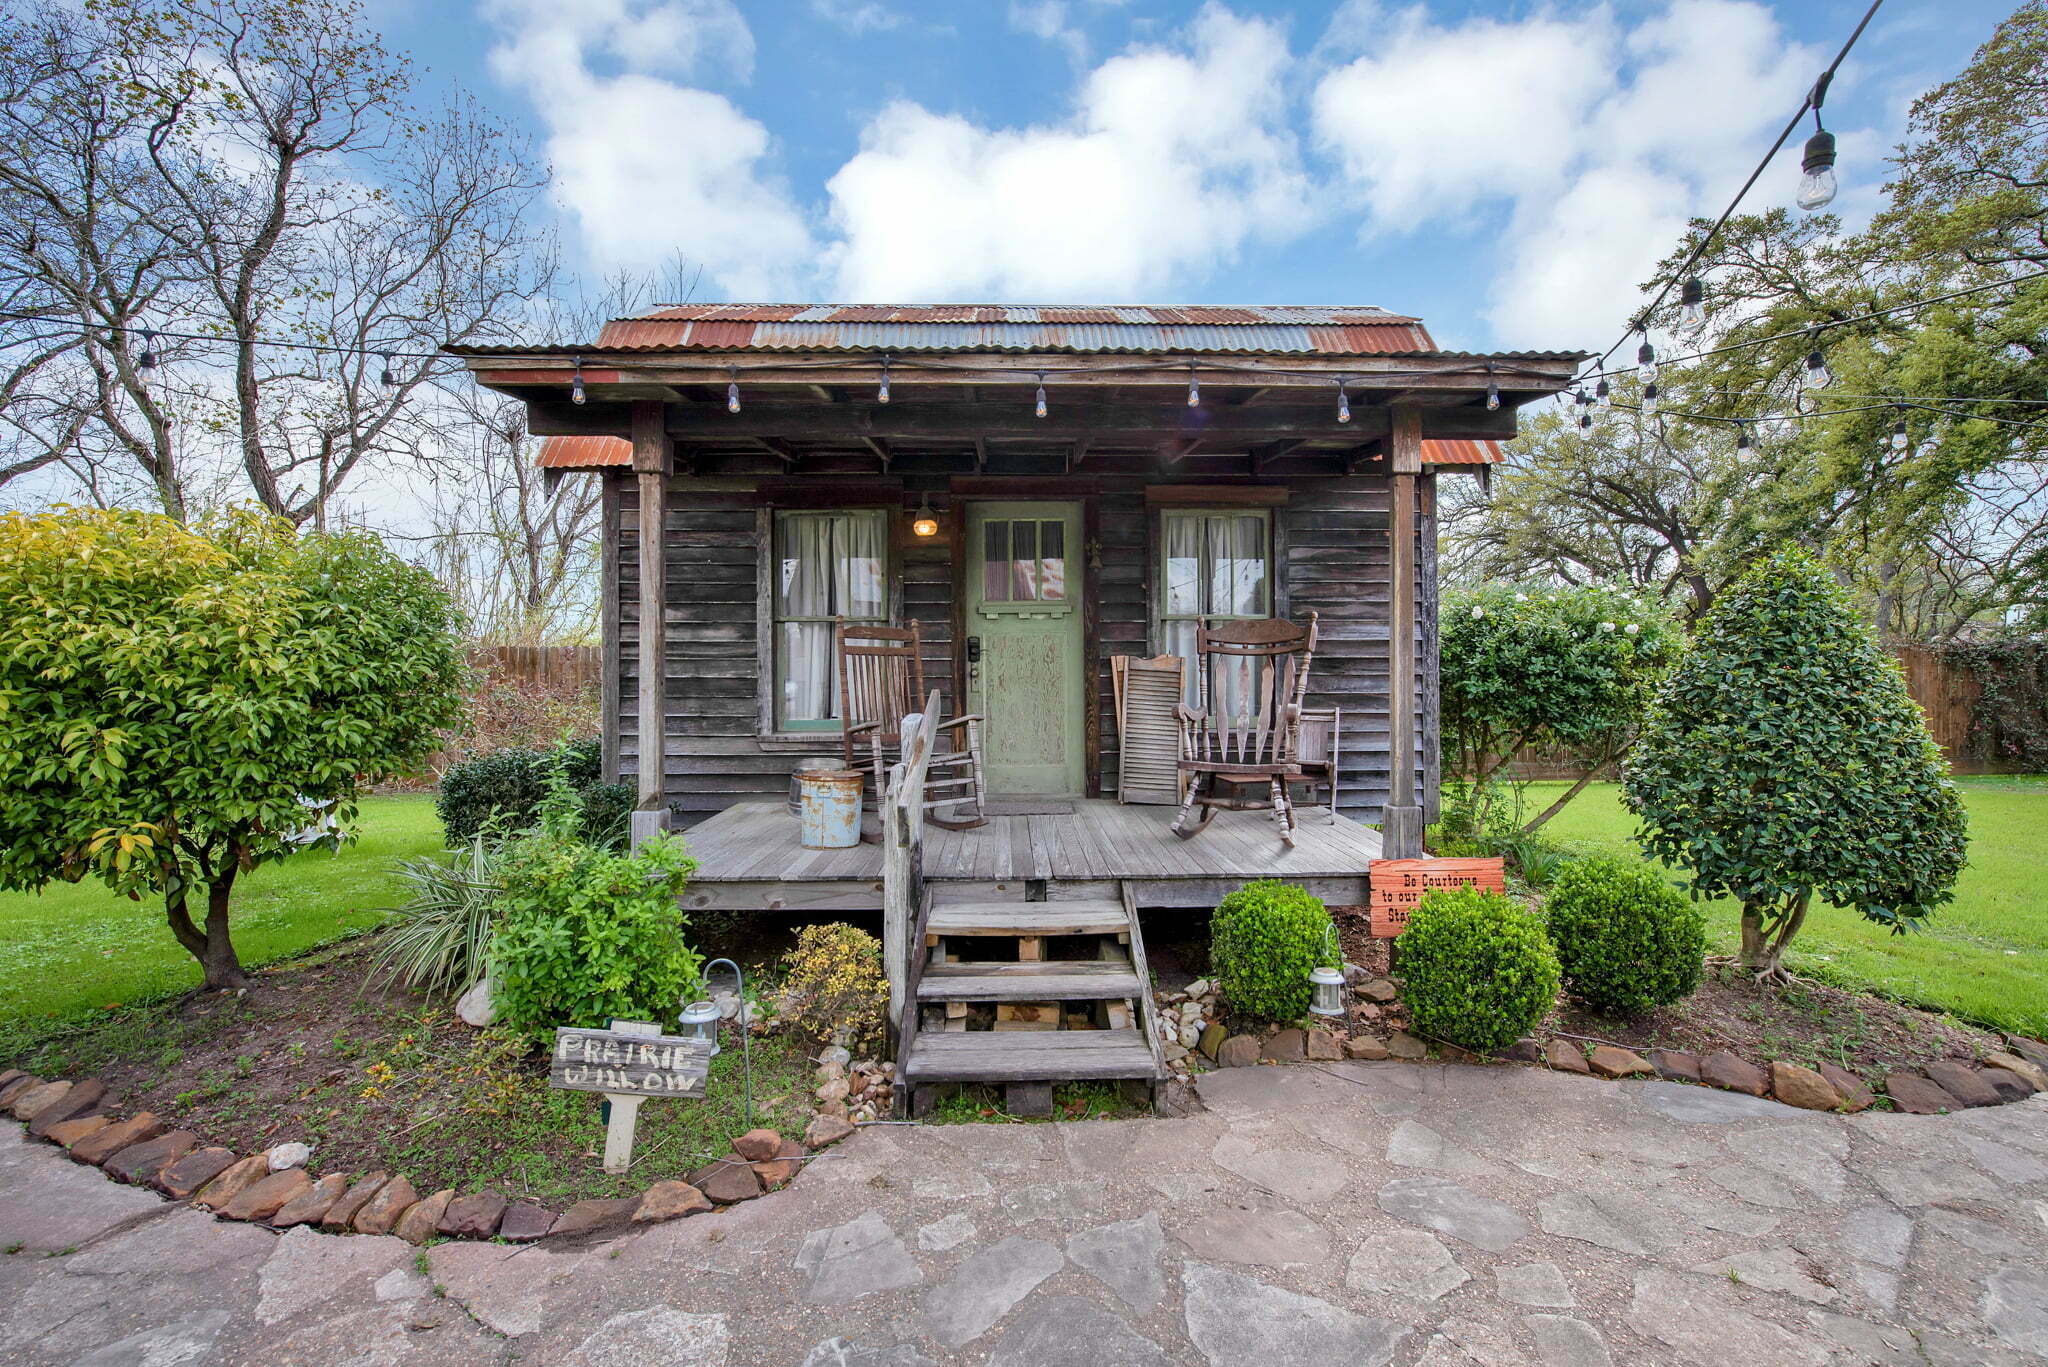 prairie willow bed and breakfast in houston